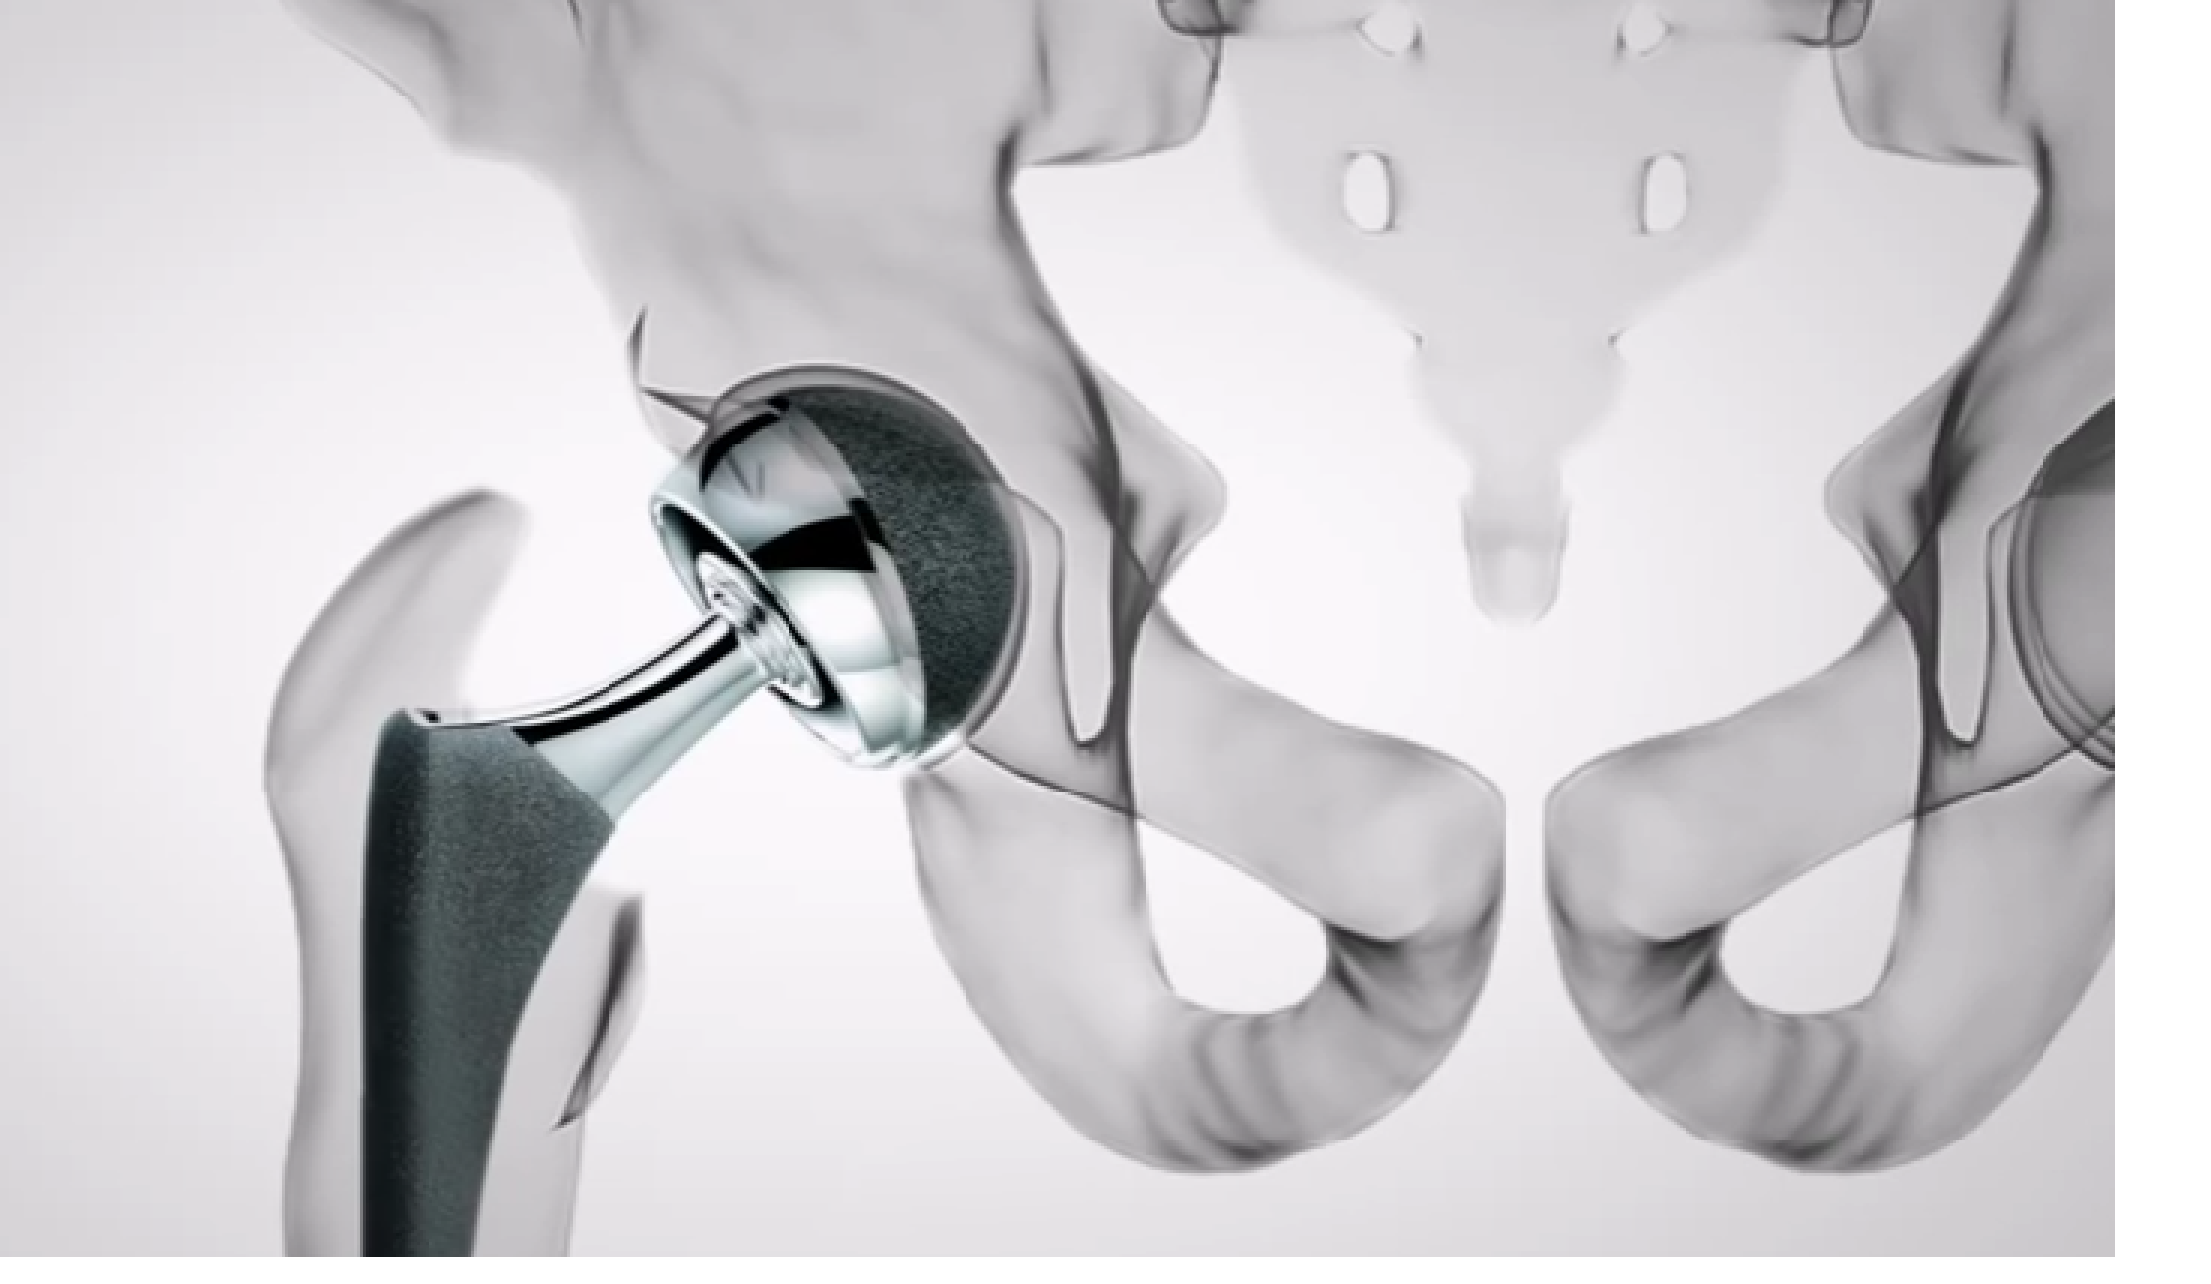 Stryker Hip Device Failure Complaints on the Rise